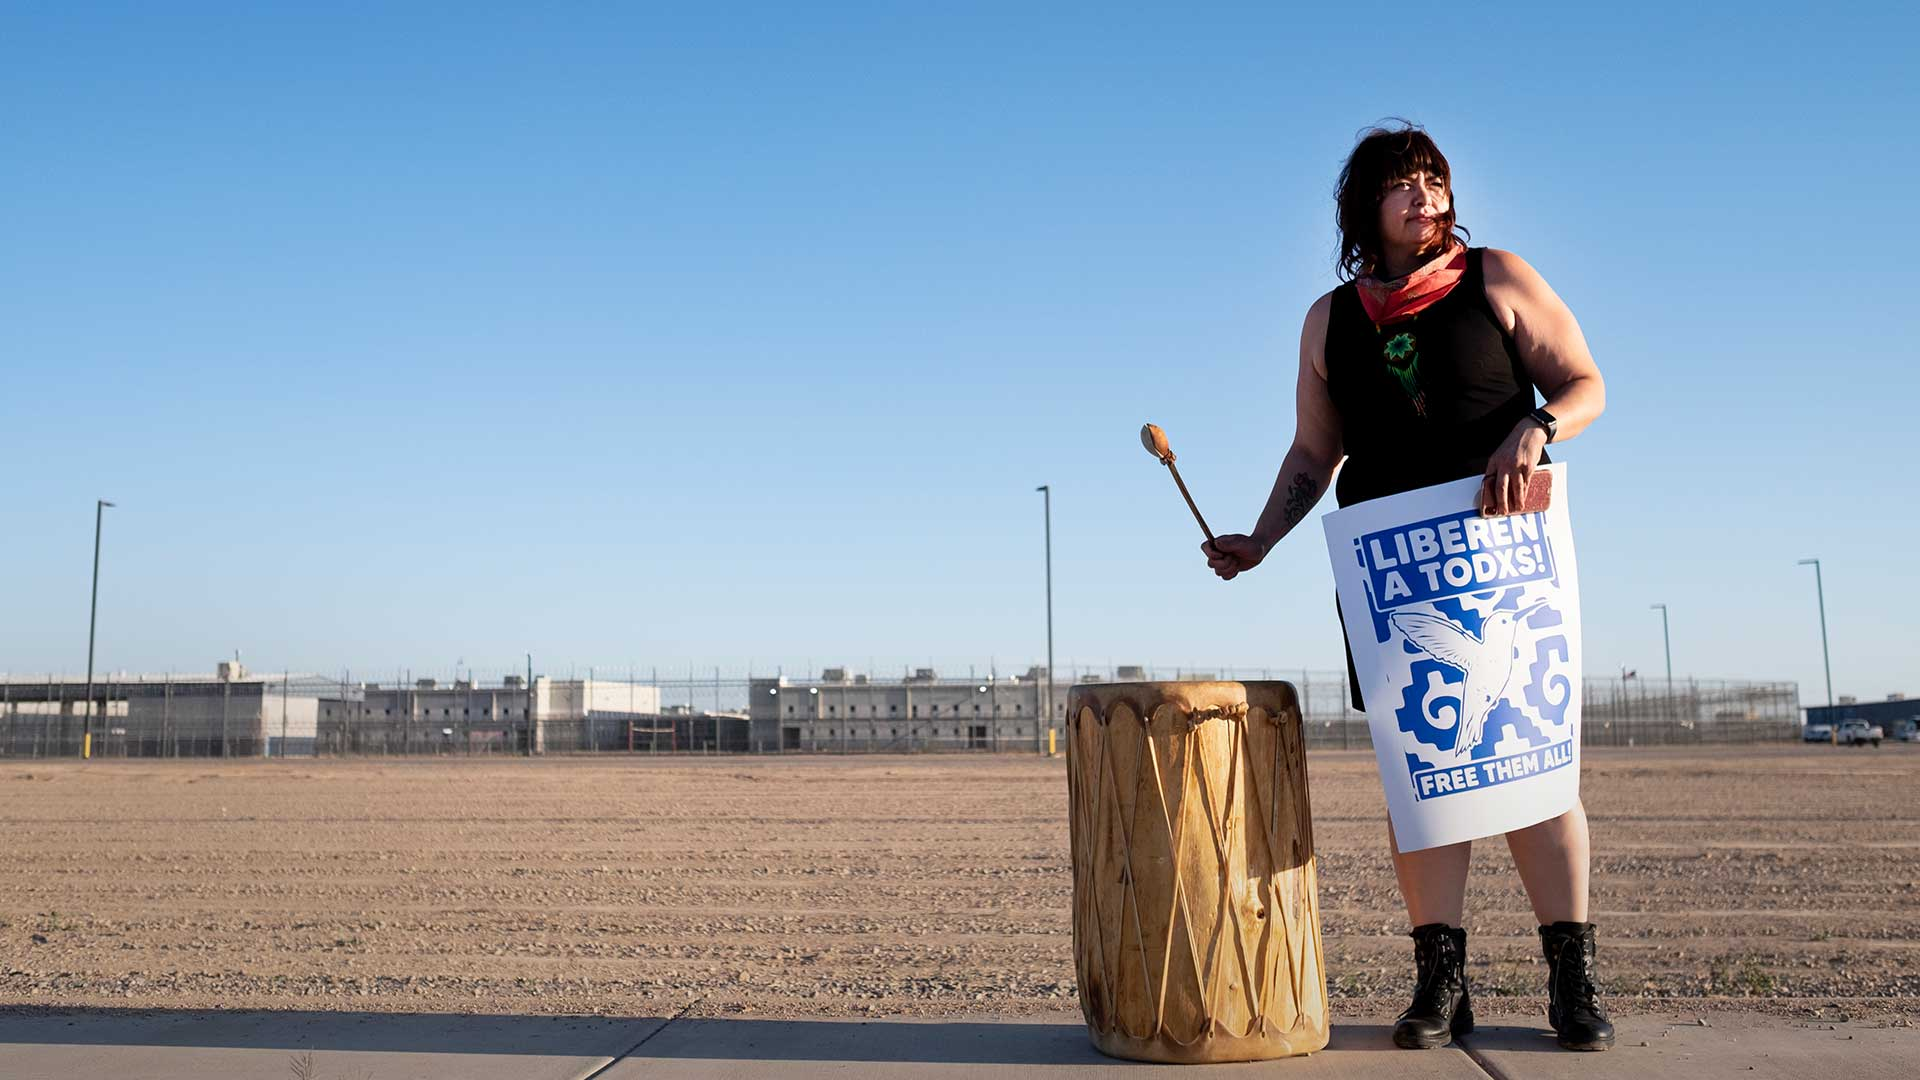 A protester bangs a drum on the sidewalk outside the La Palma Detention Center in Eloy, Arizona. Protesters in over 200 cars circled the facility on on April 10 calling for the release of detainees in the wake of the coronavirus pandemic.